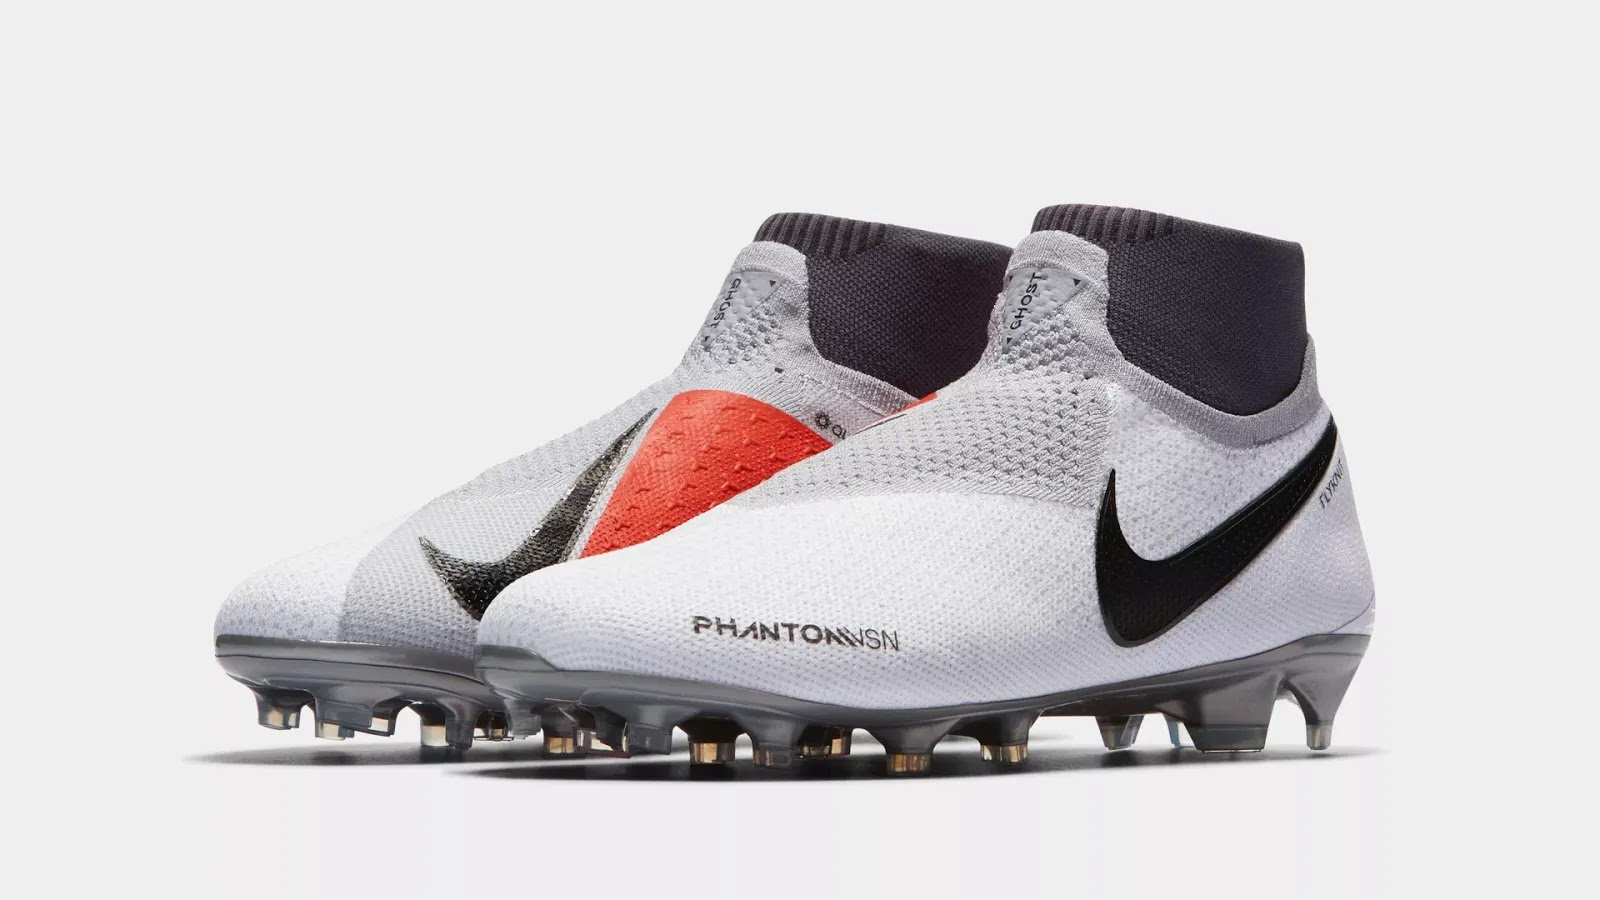 1167a7c5074 Low-Cut Nike Phantom VSN Boots Revealed  - Footy Headlines